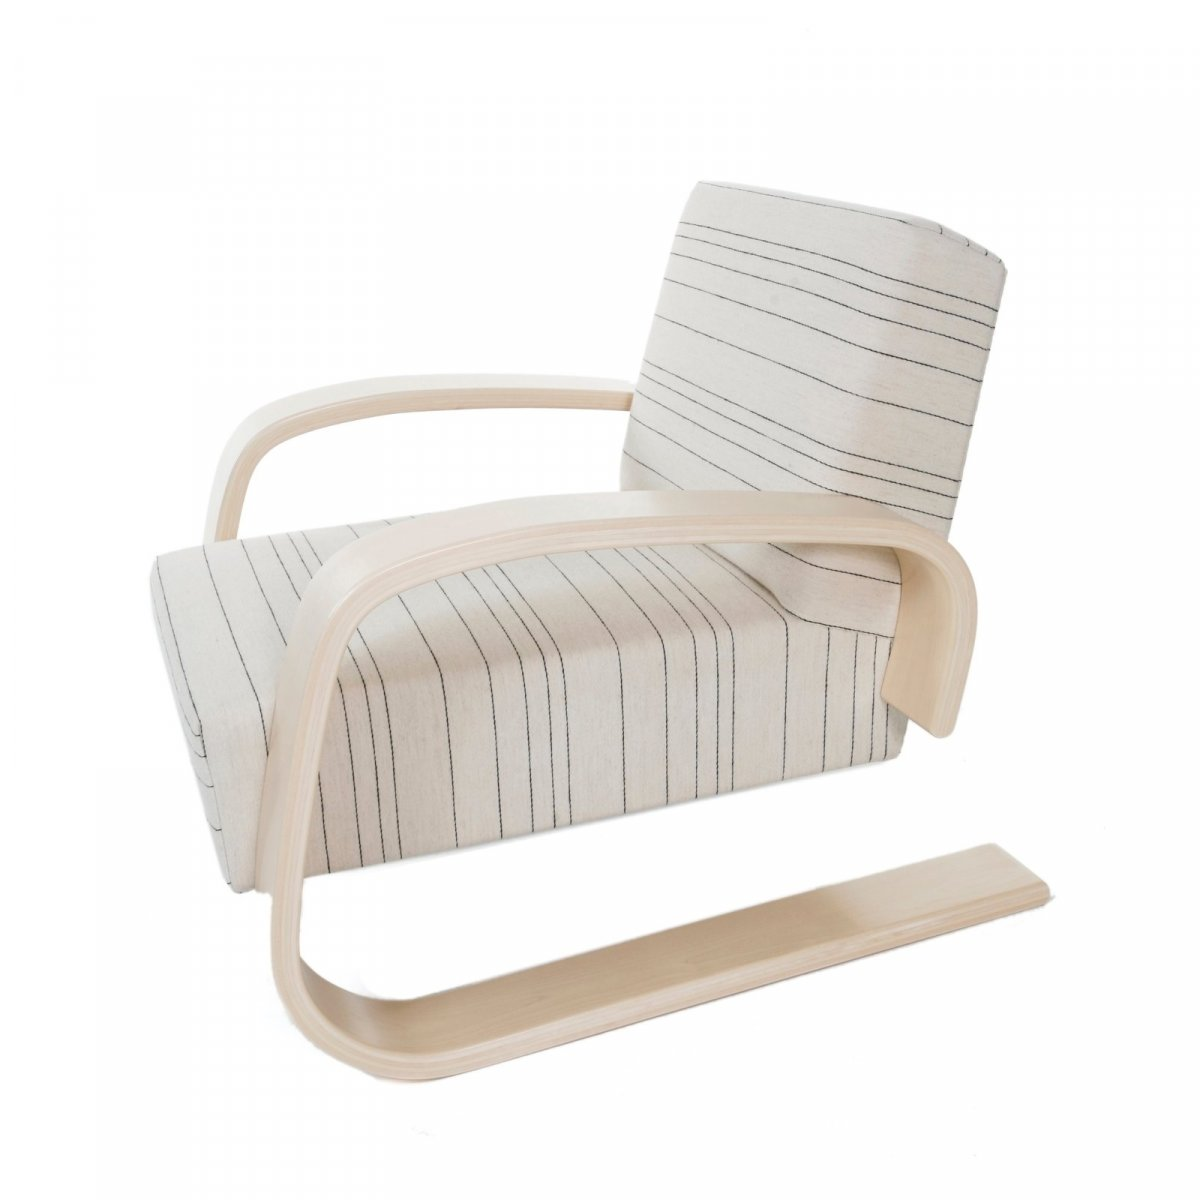 "Armchair 400 � Tank� Lounge Chairs From Artek: Armchair 400 ""Tank Chair"" By Alvar Aalto For Artek"